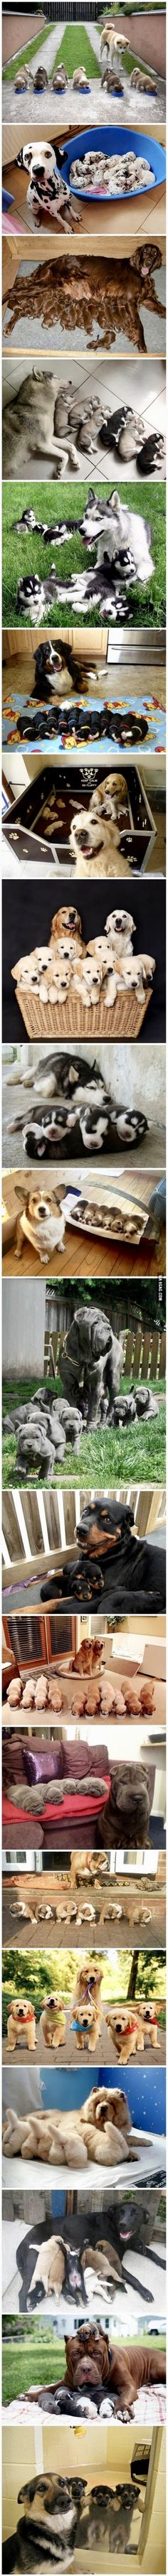 Proud Parents and their Pups